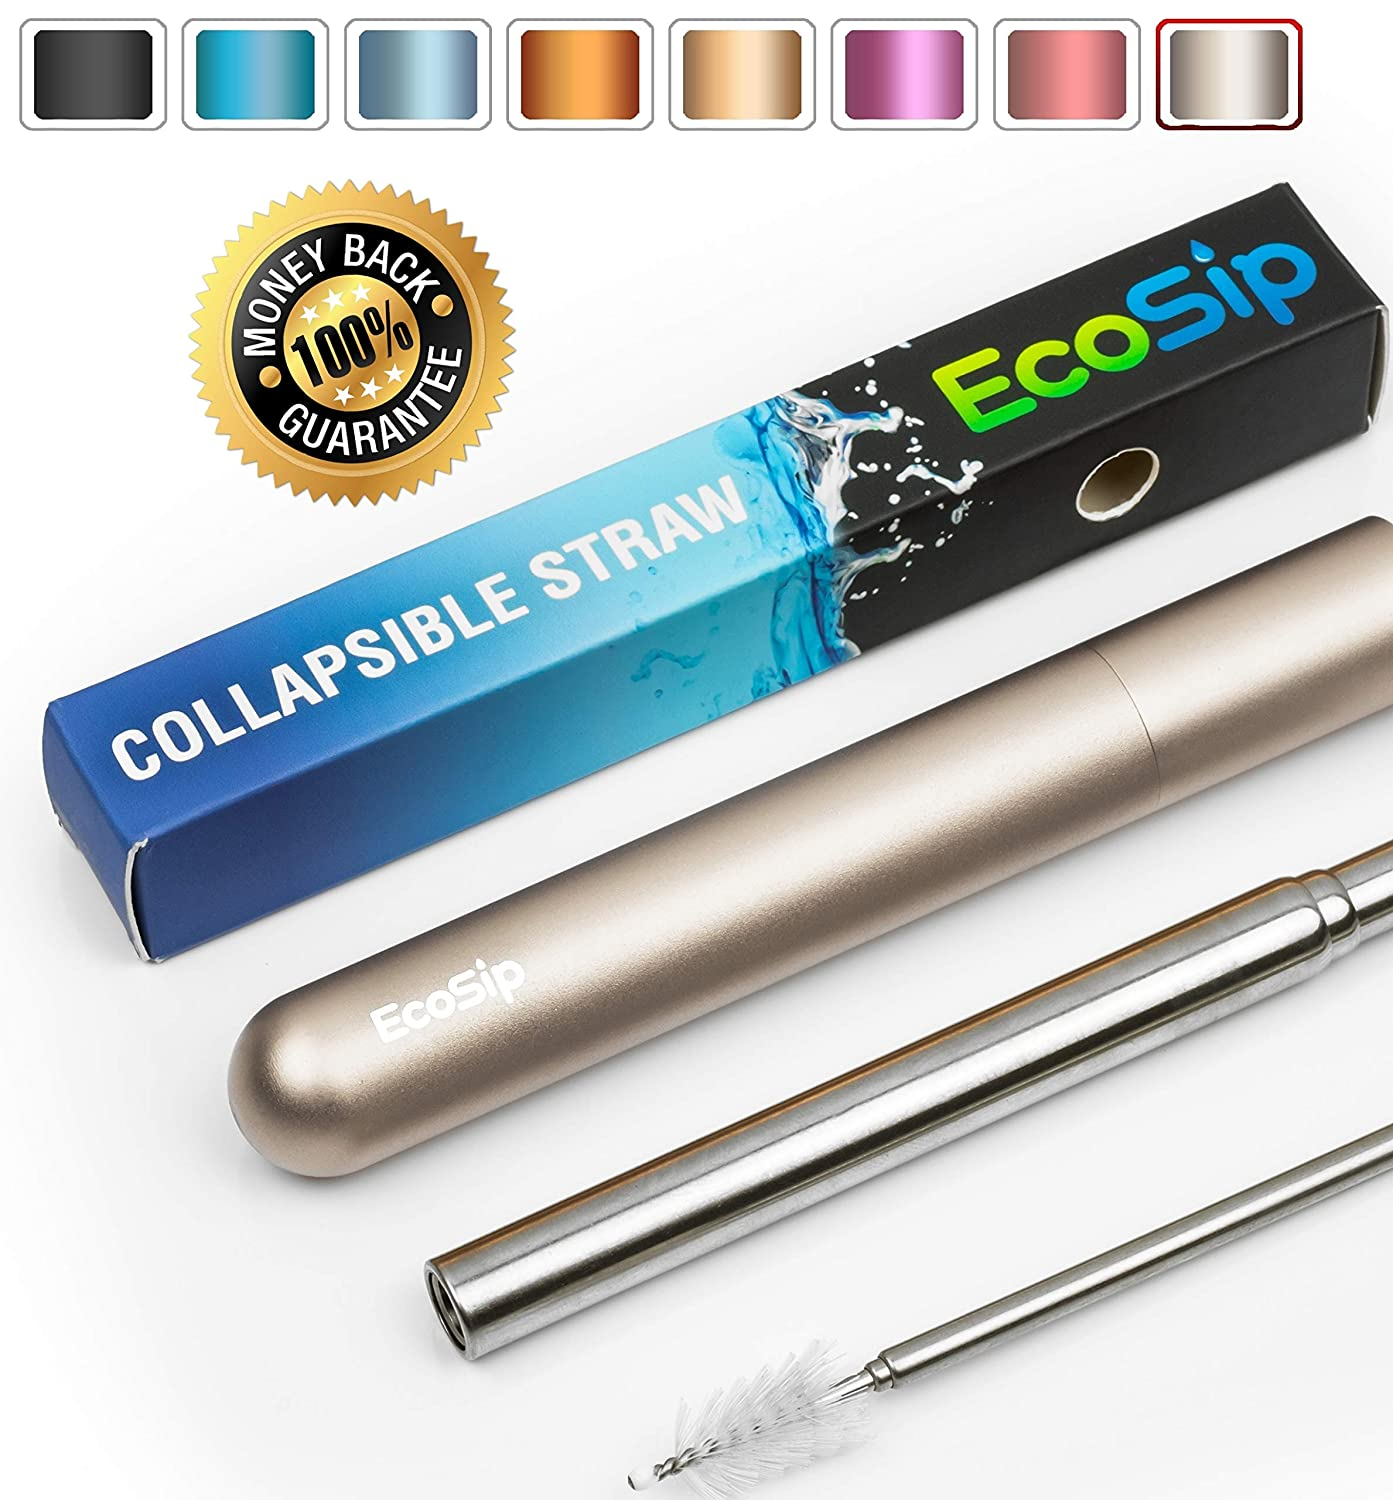 Collapsible Straw EcoSip | Telescopic Metal Stainless Steel Reusable | Portable Flex | Final Eco Friendly Foldable Travel Straw | Cleaning Brush Key Ring Hard Case | Silicone Tip | 4 Colors (Black).